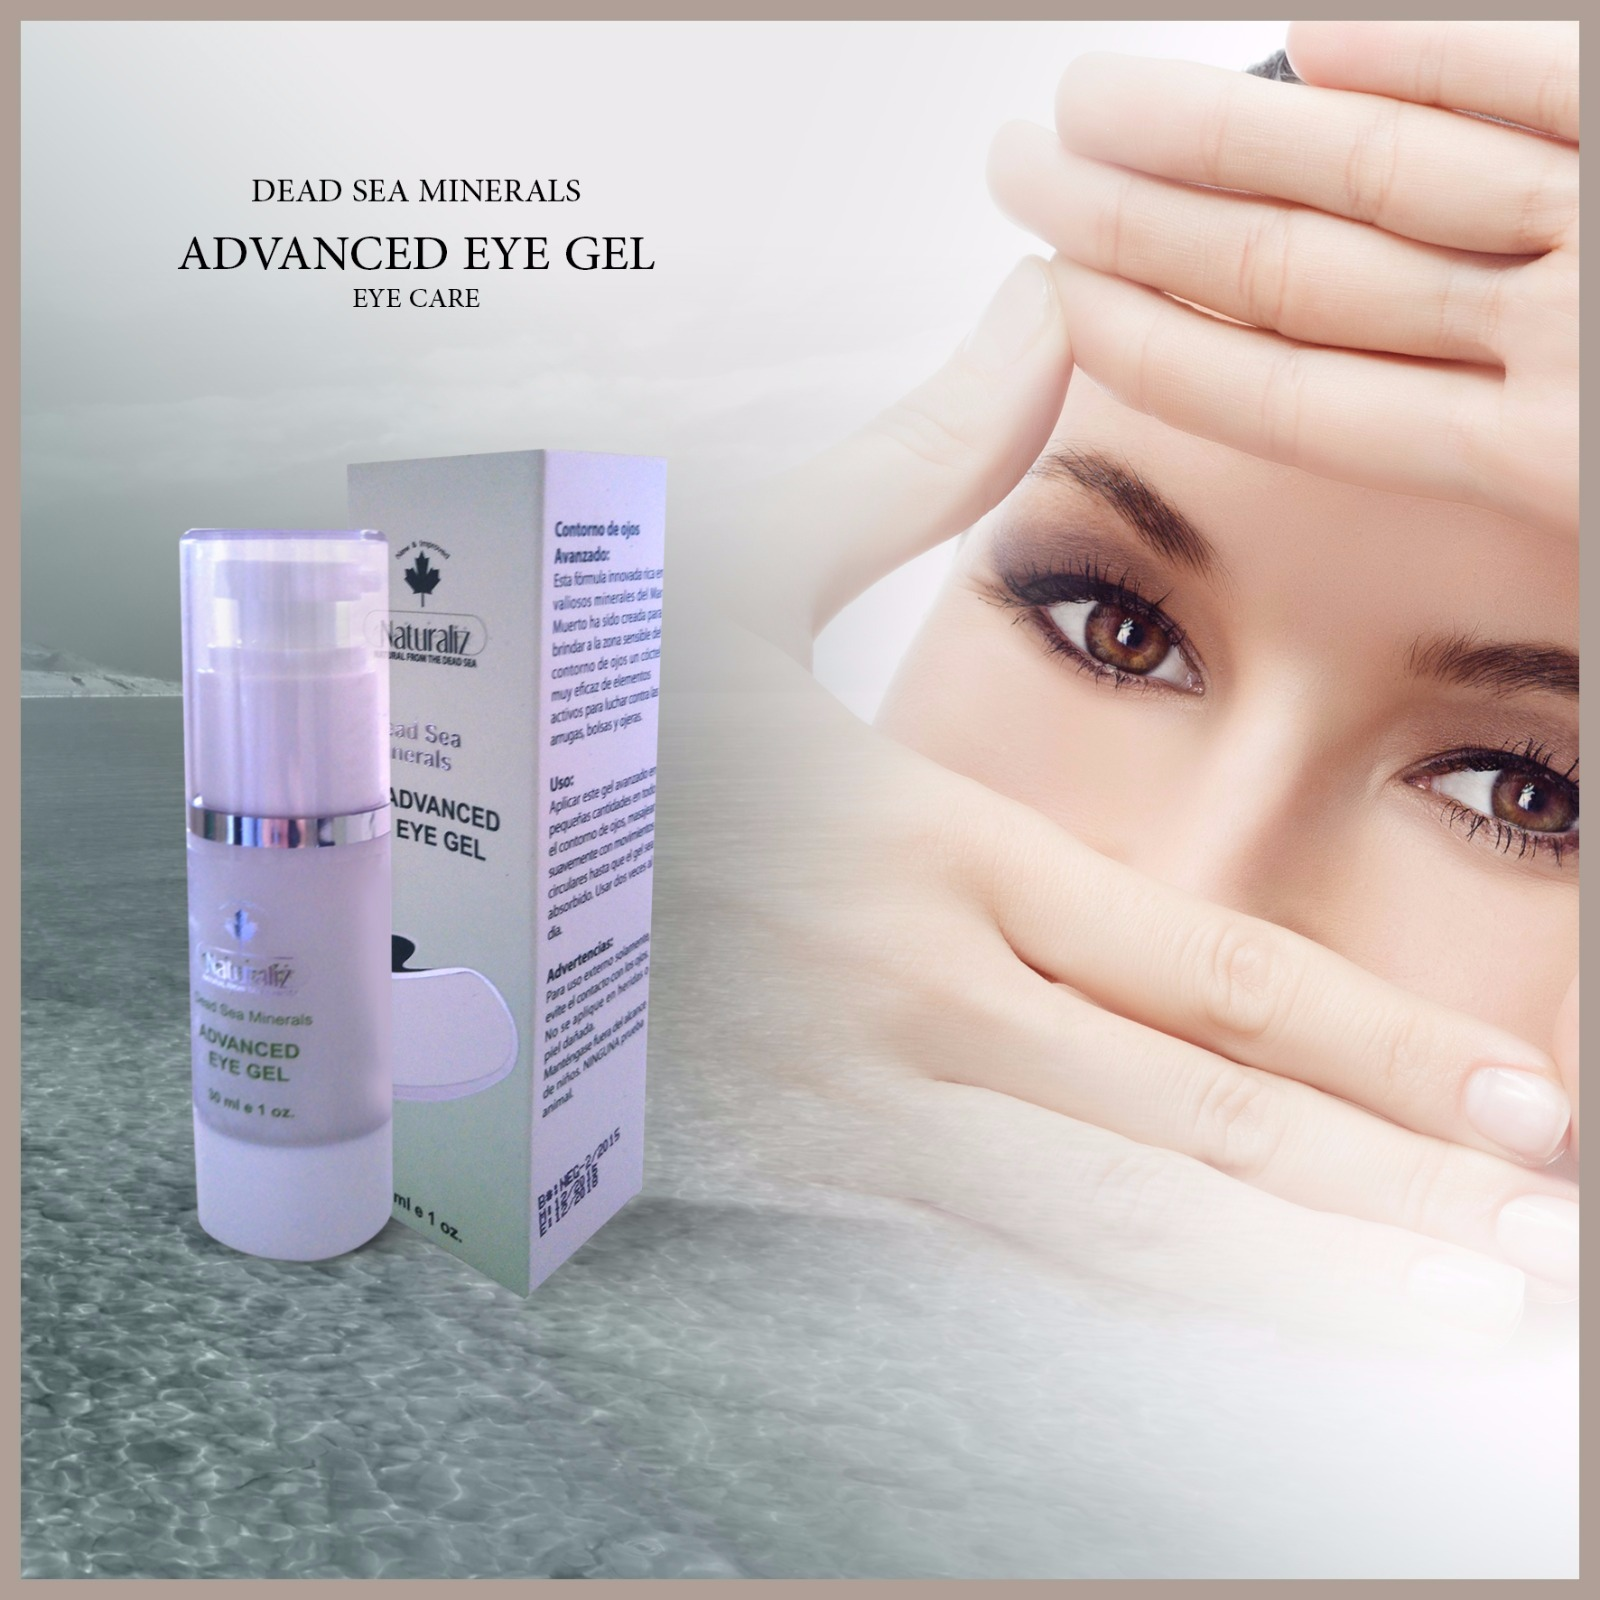 Advanced Eye Gel